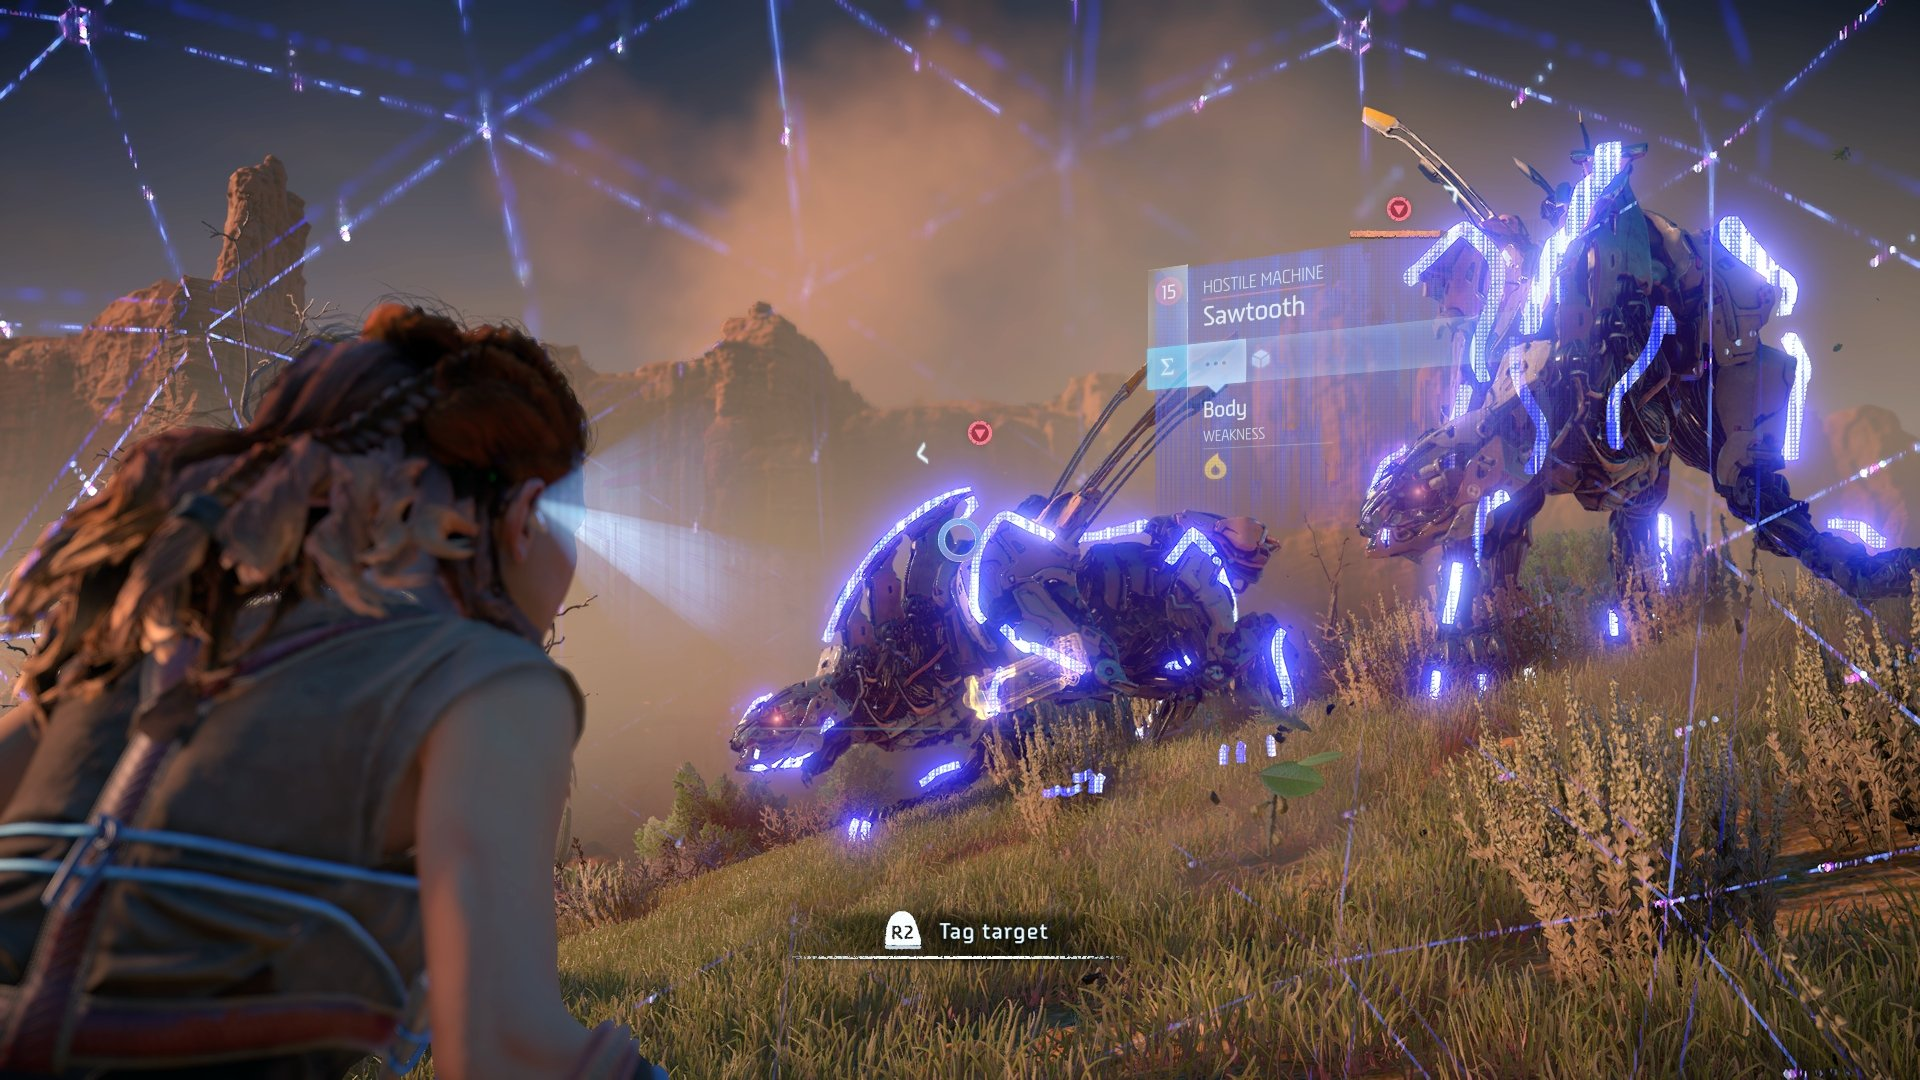 Horizon Zero Dawn Video Chronicles The Rise Of The Machines, New Screenshots Surface